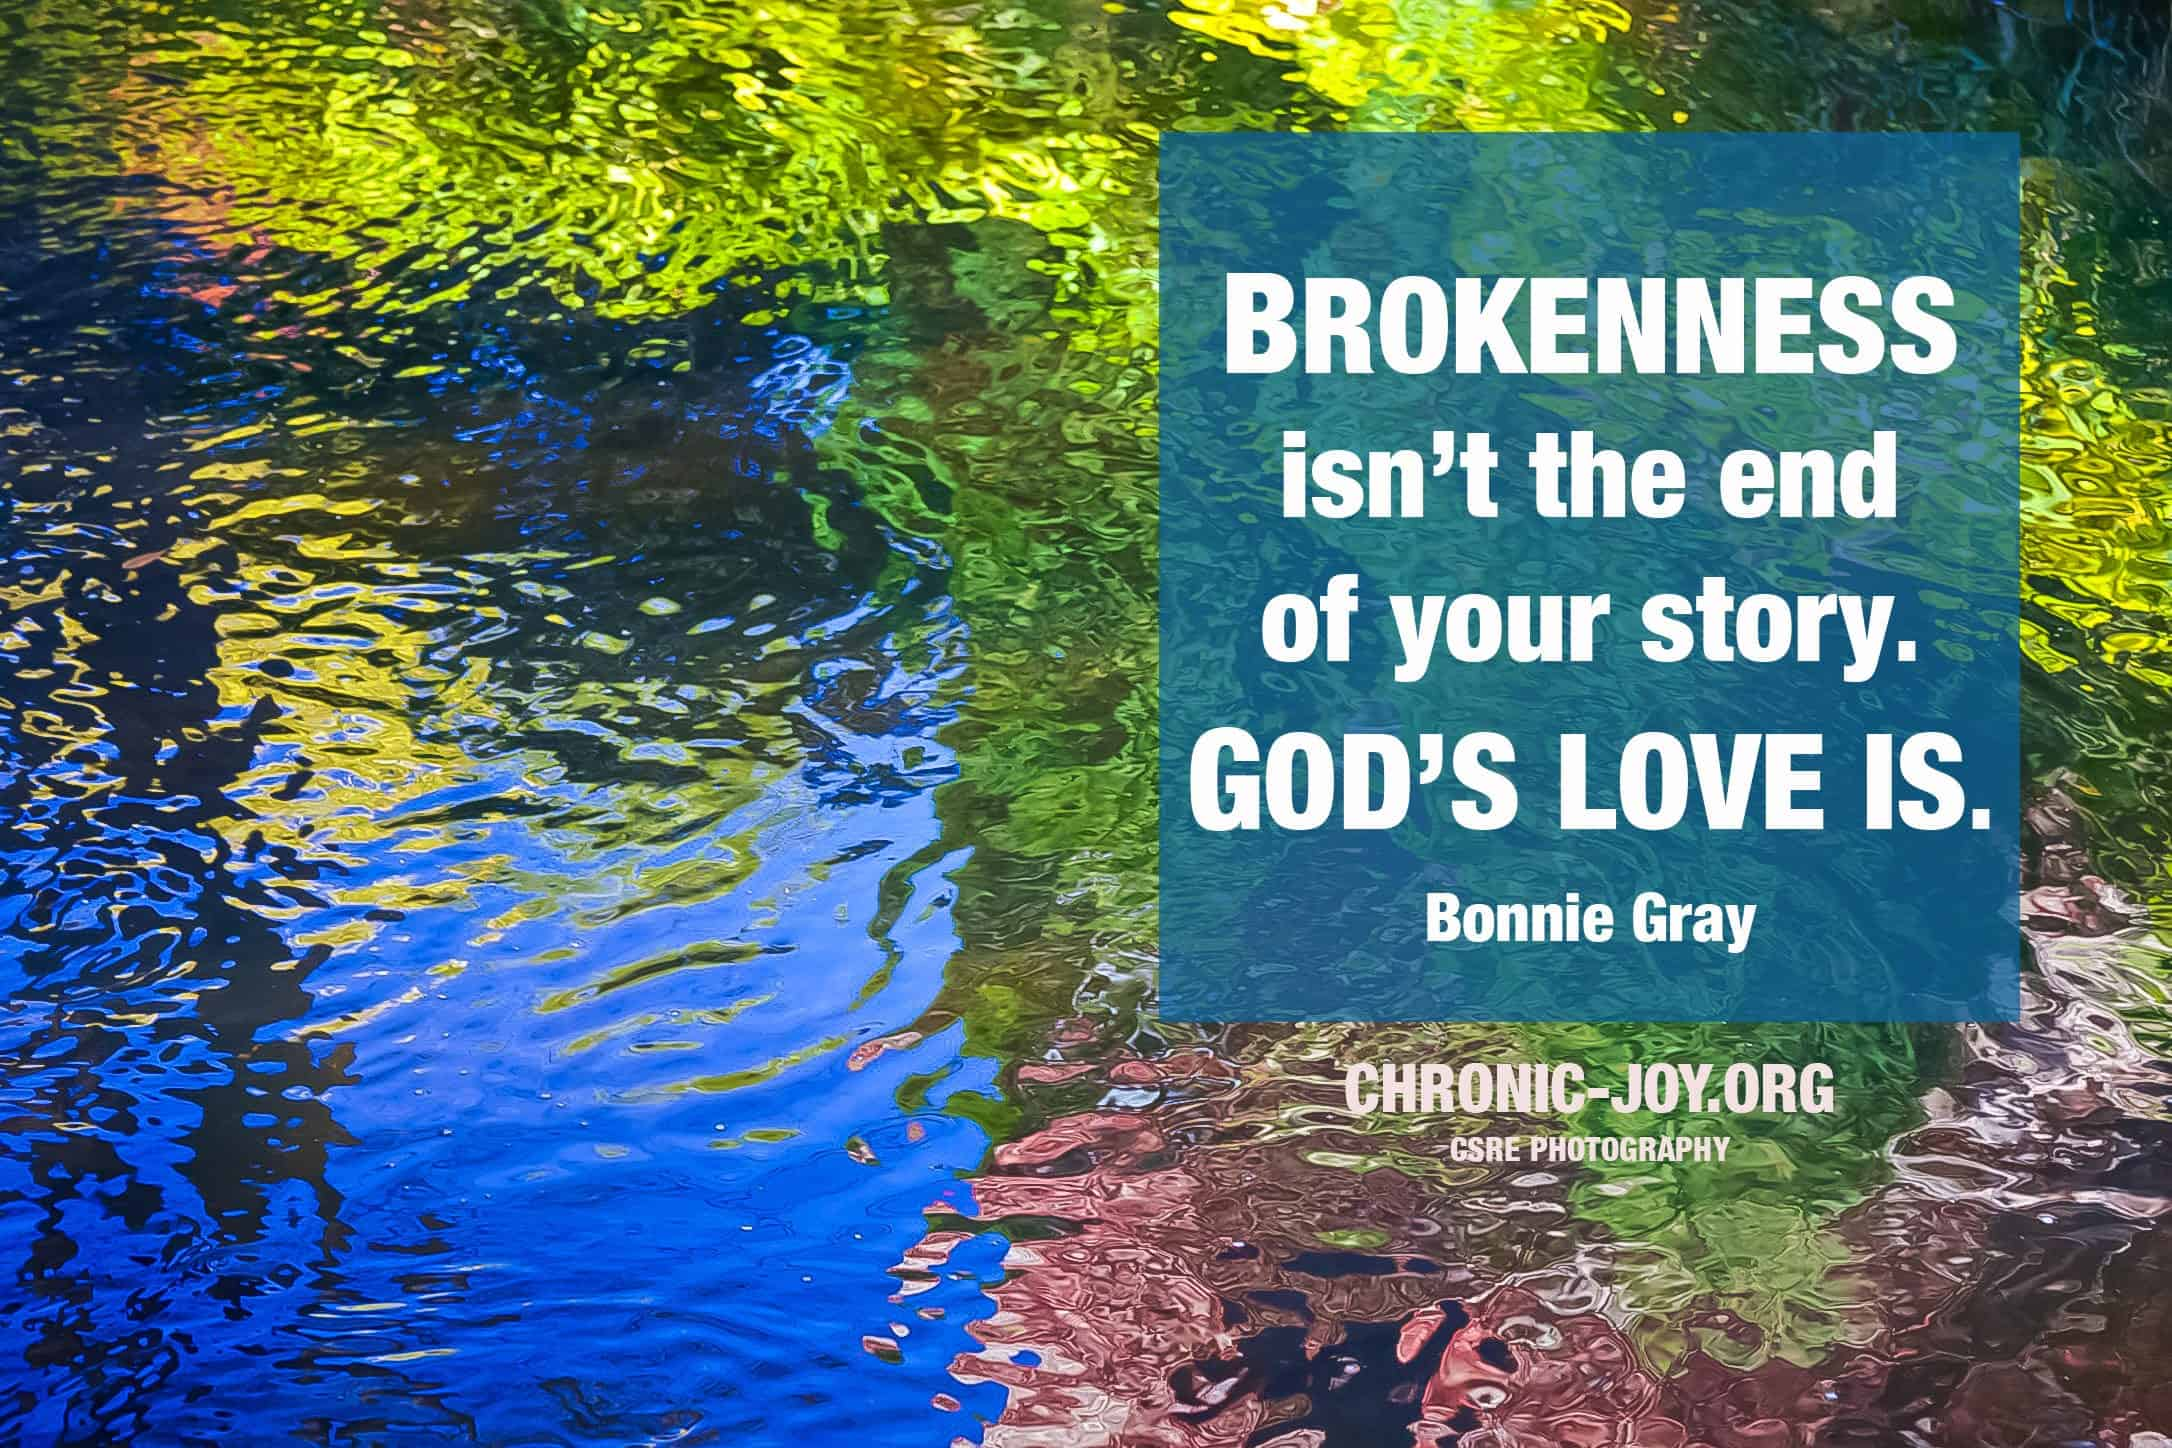 Brokenness isn't the end of your story, God's love is.